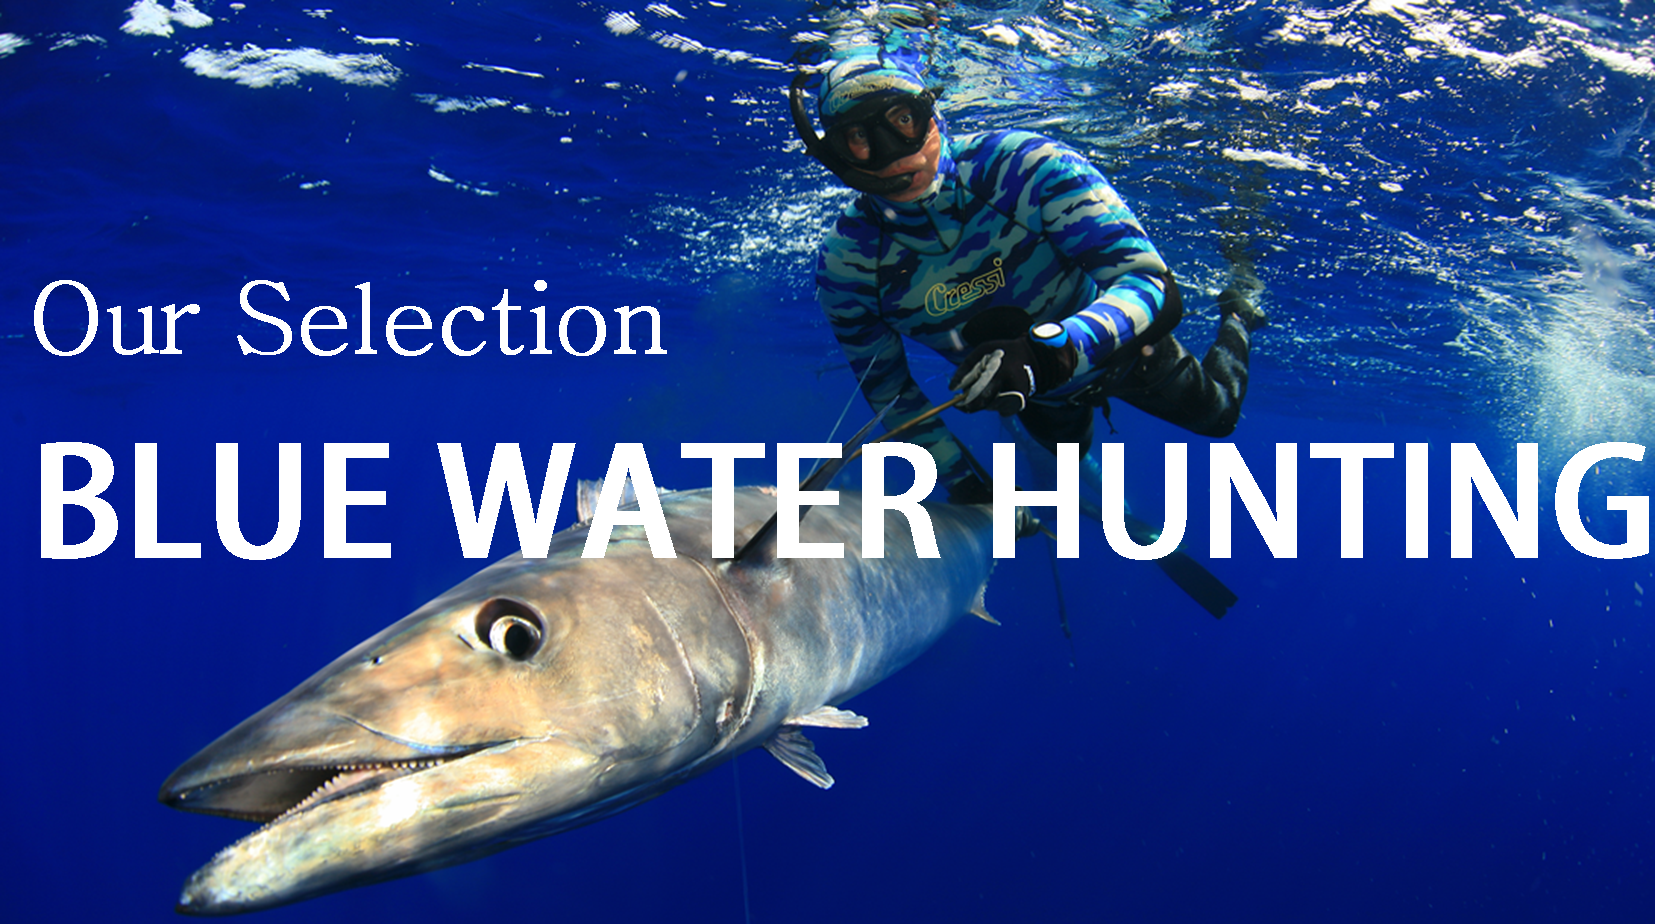 SELECCION BLUE WATER HUNTING